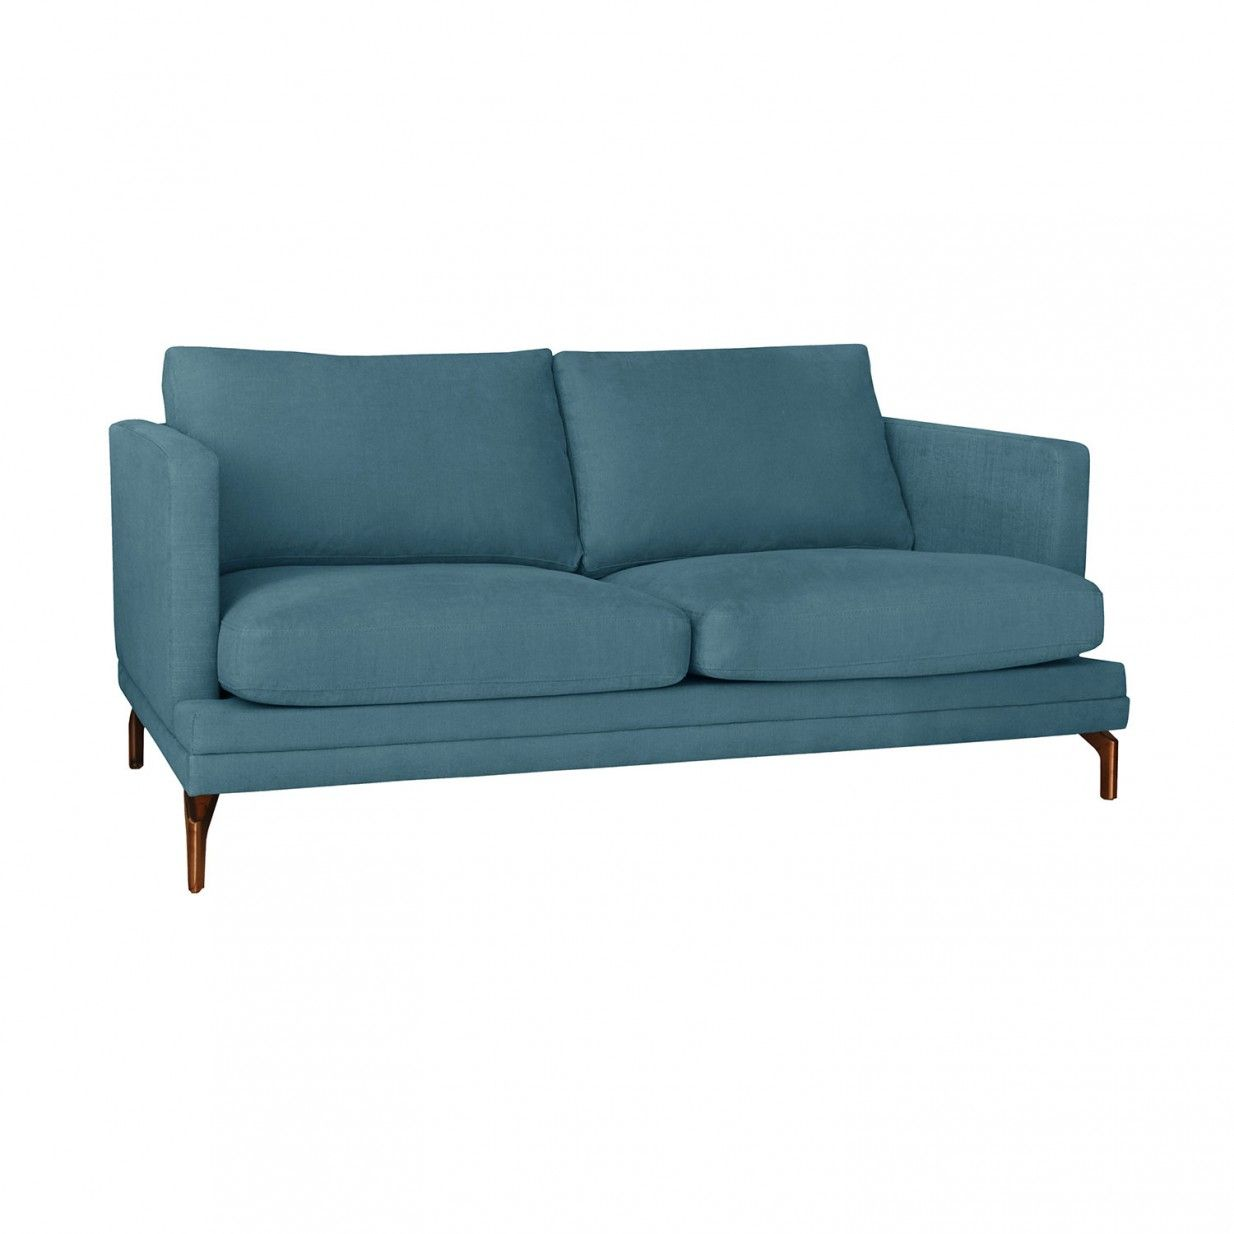 Jupiter 2 Sitzer Sofa Turkis Windsor Co Sofas Outdoor Sofa Sofa Furniture